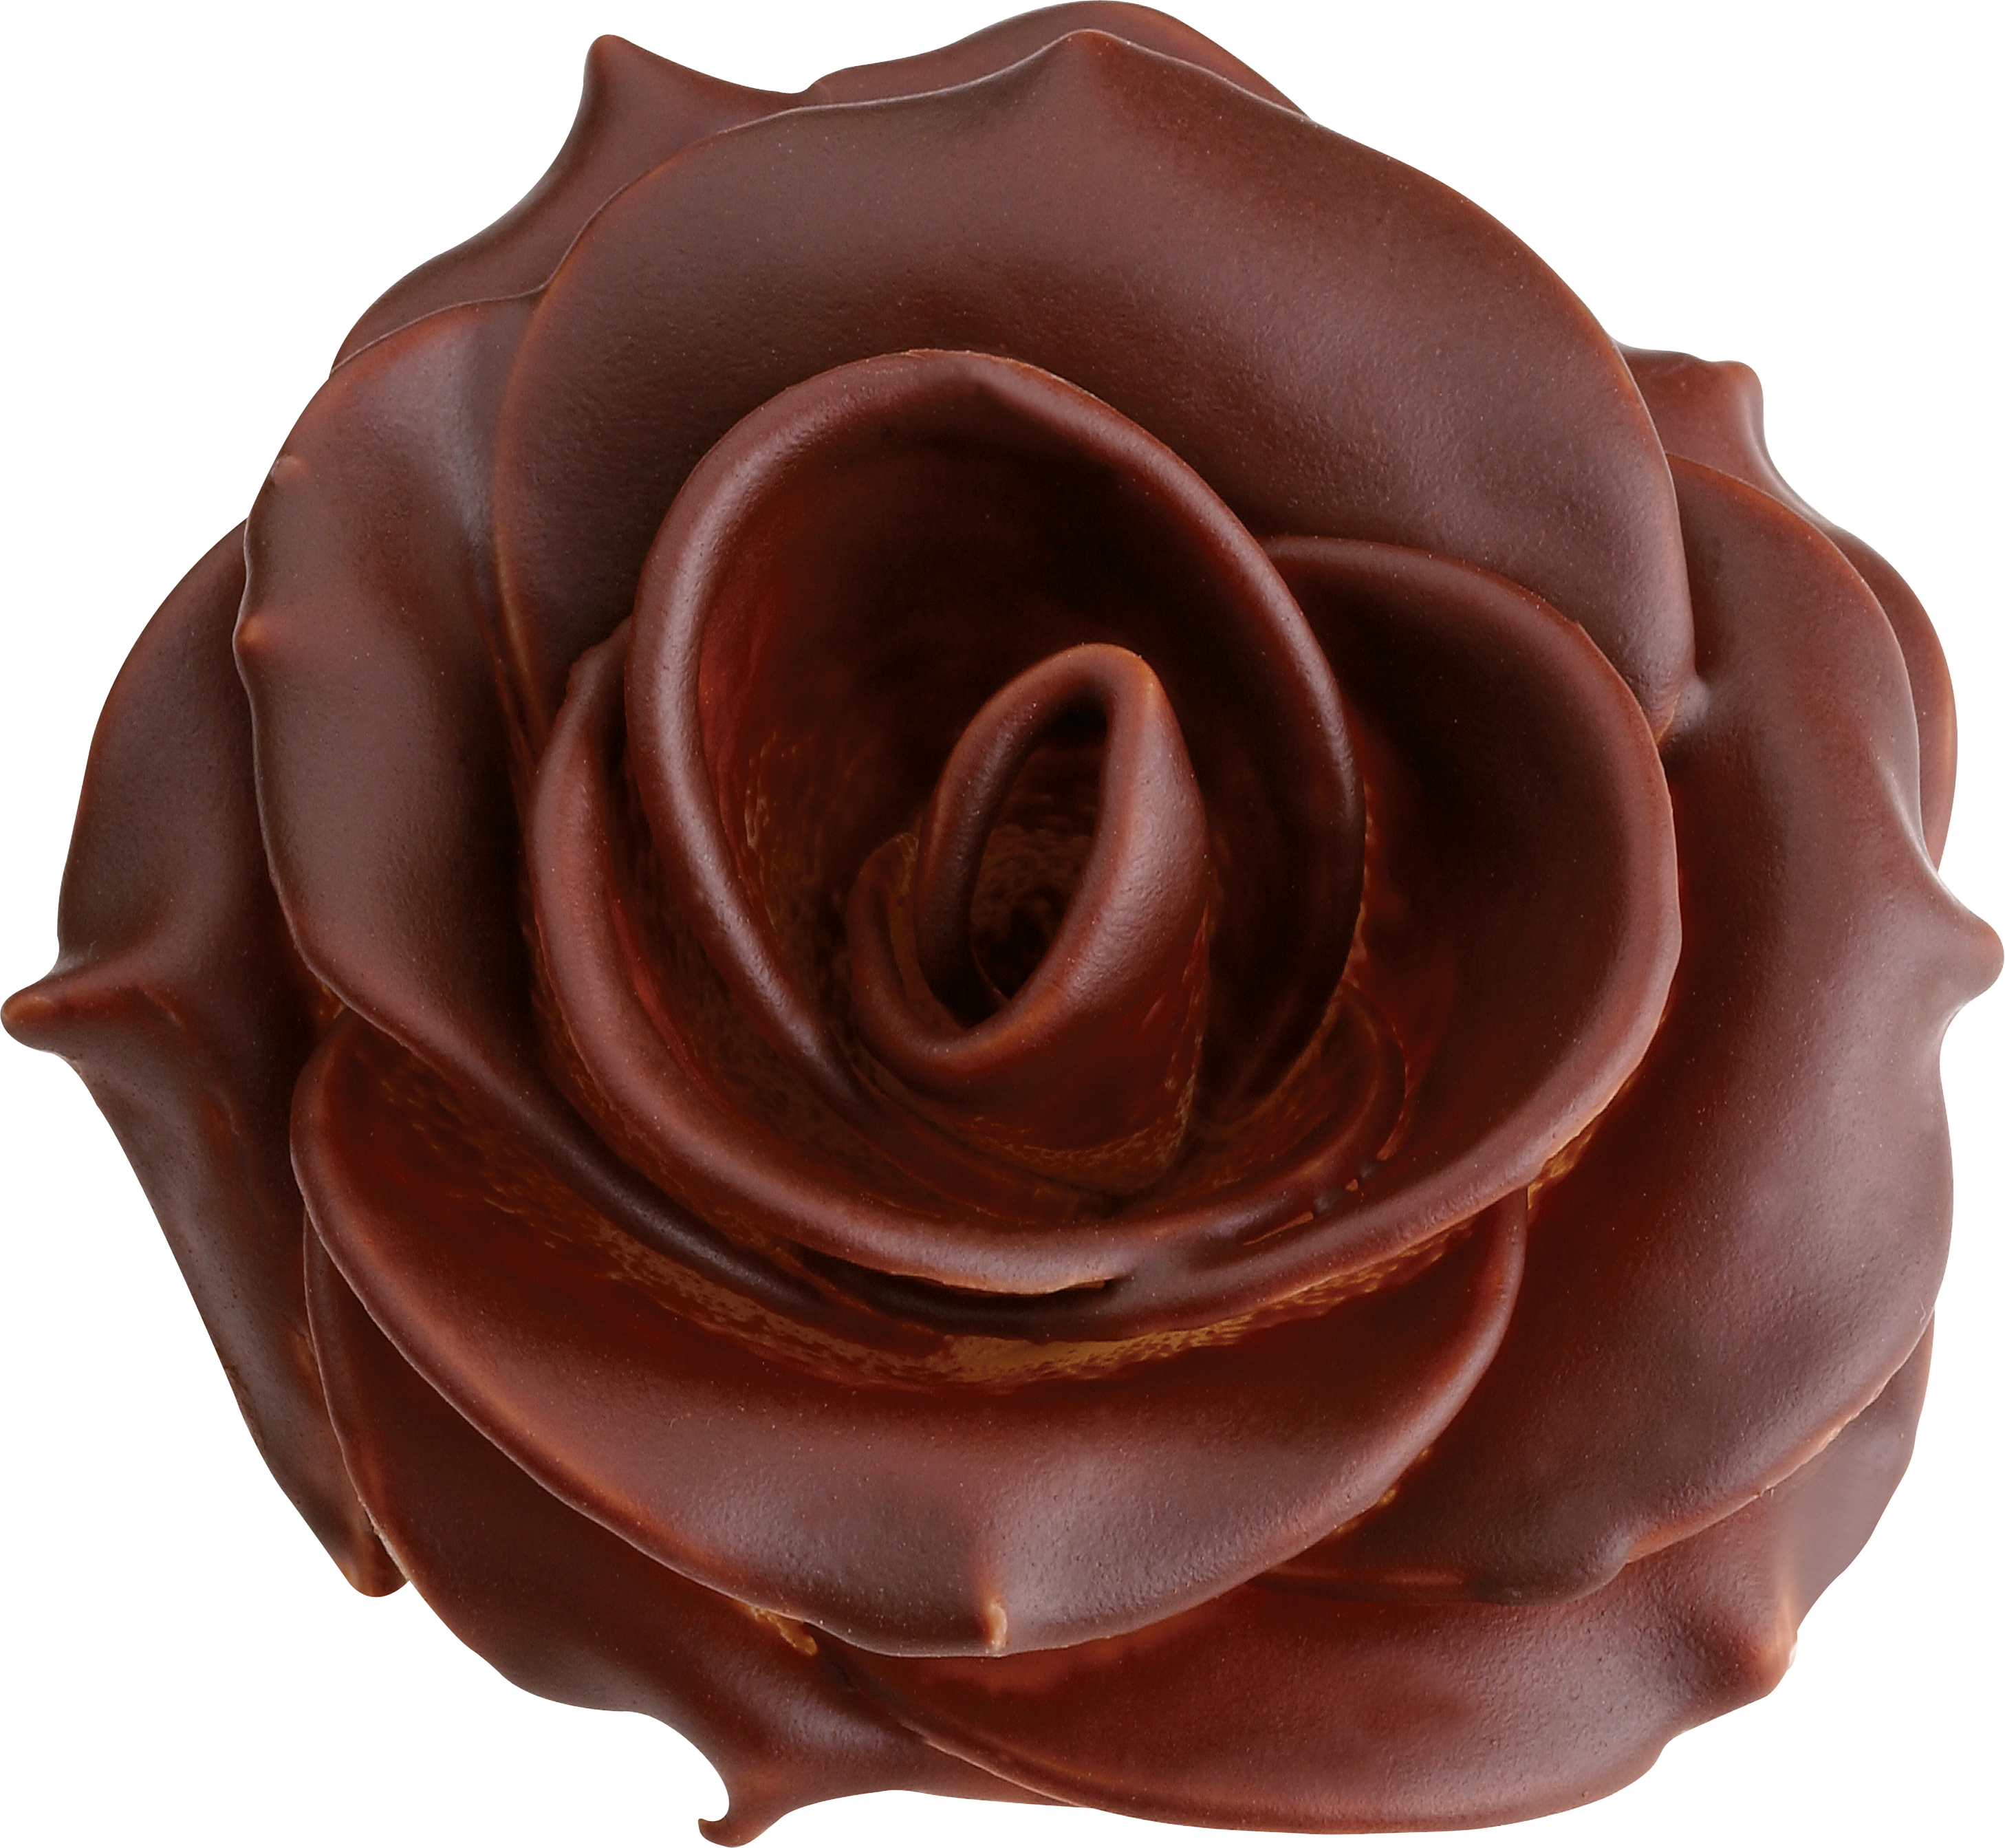 Png image purepng free. Clipart rose chocolate